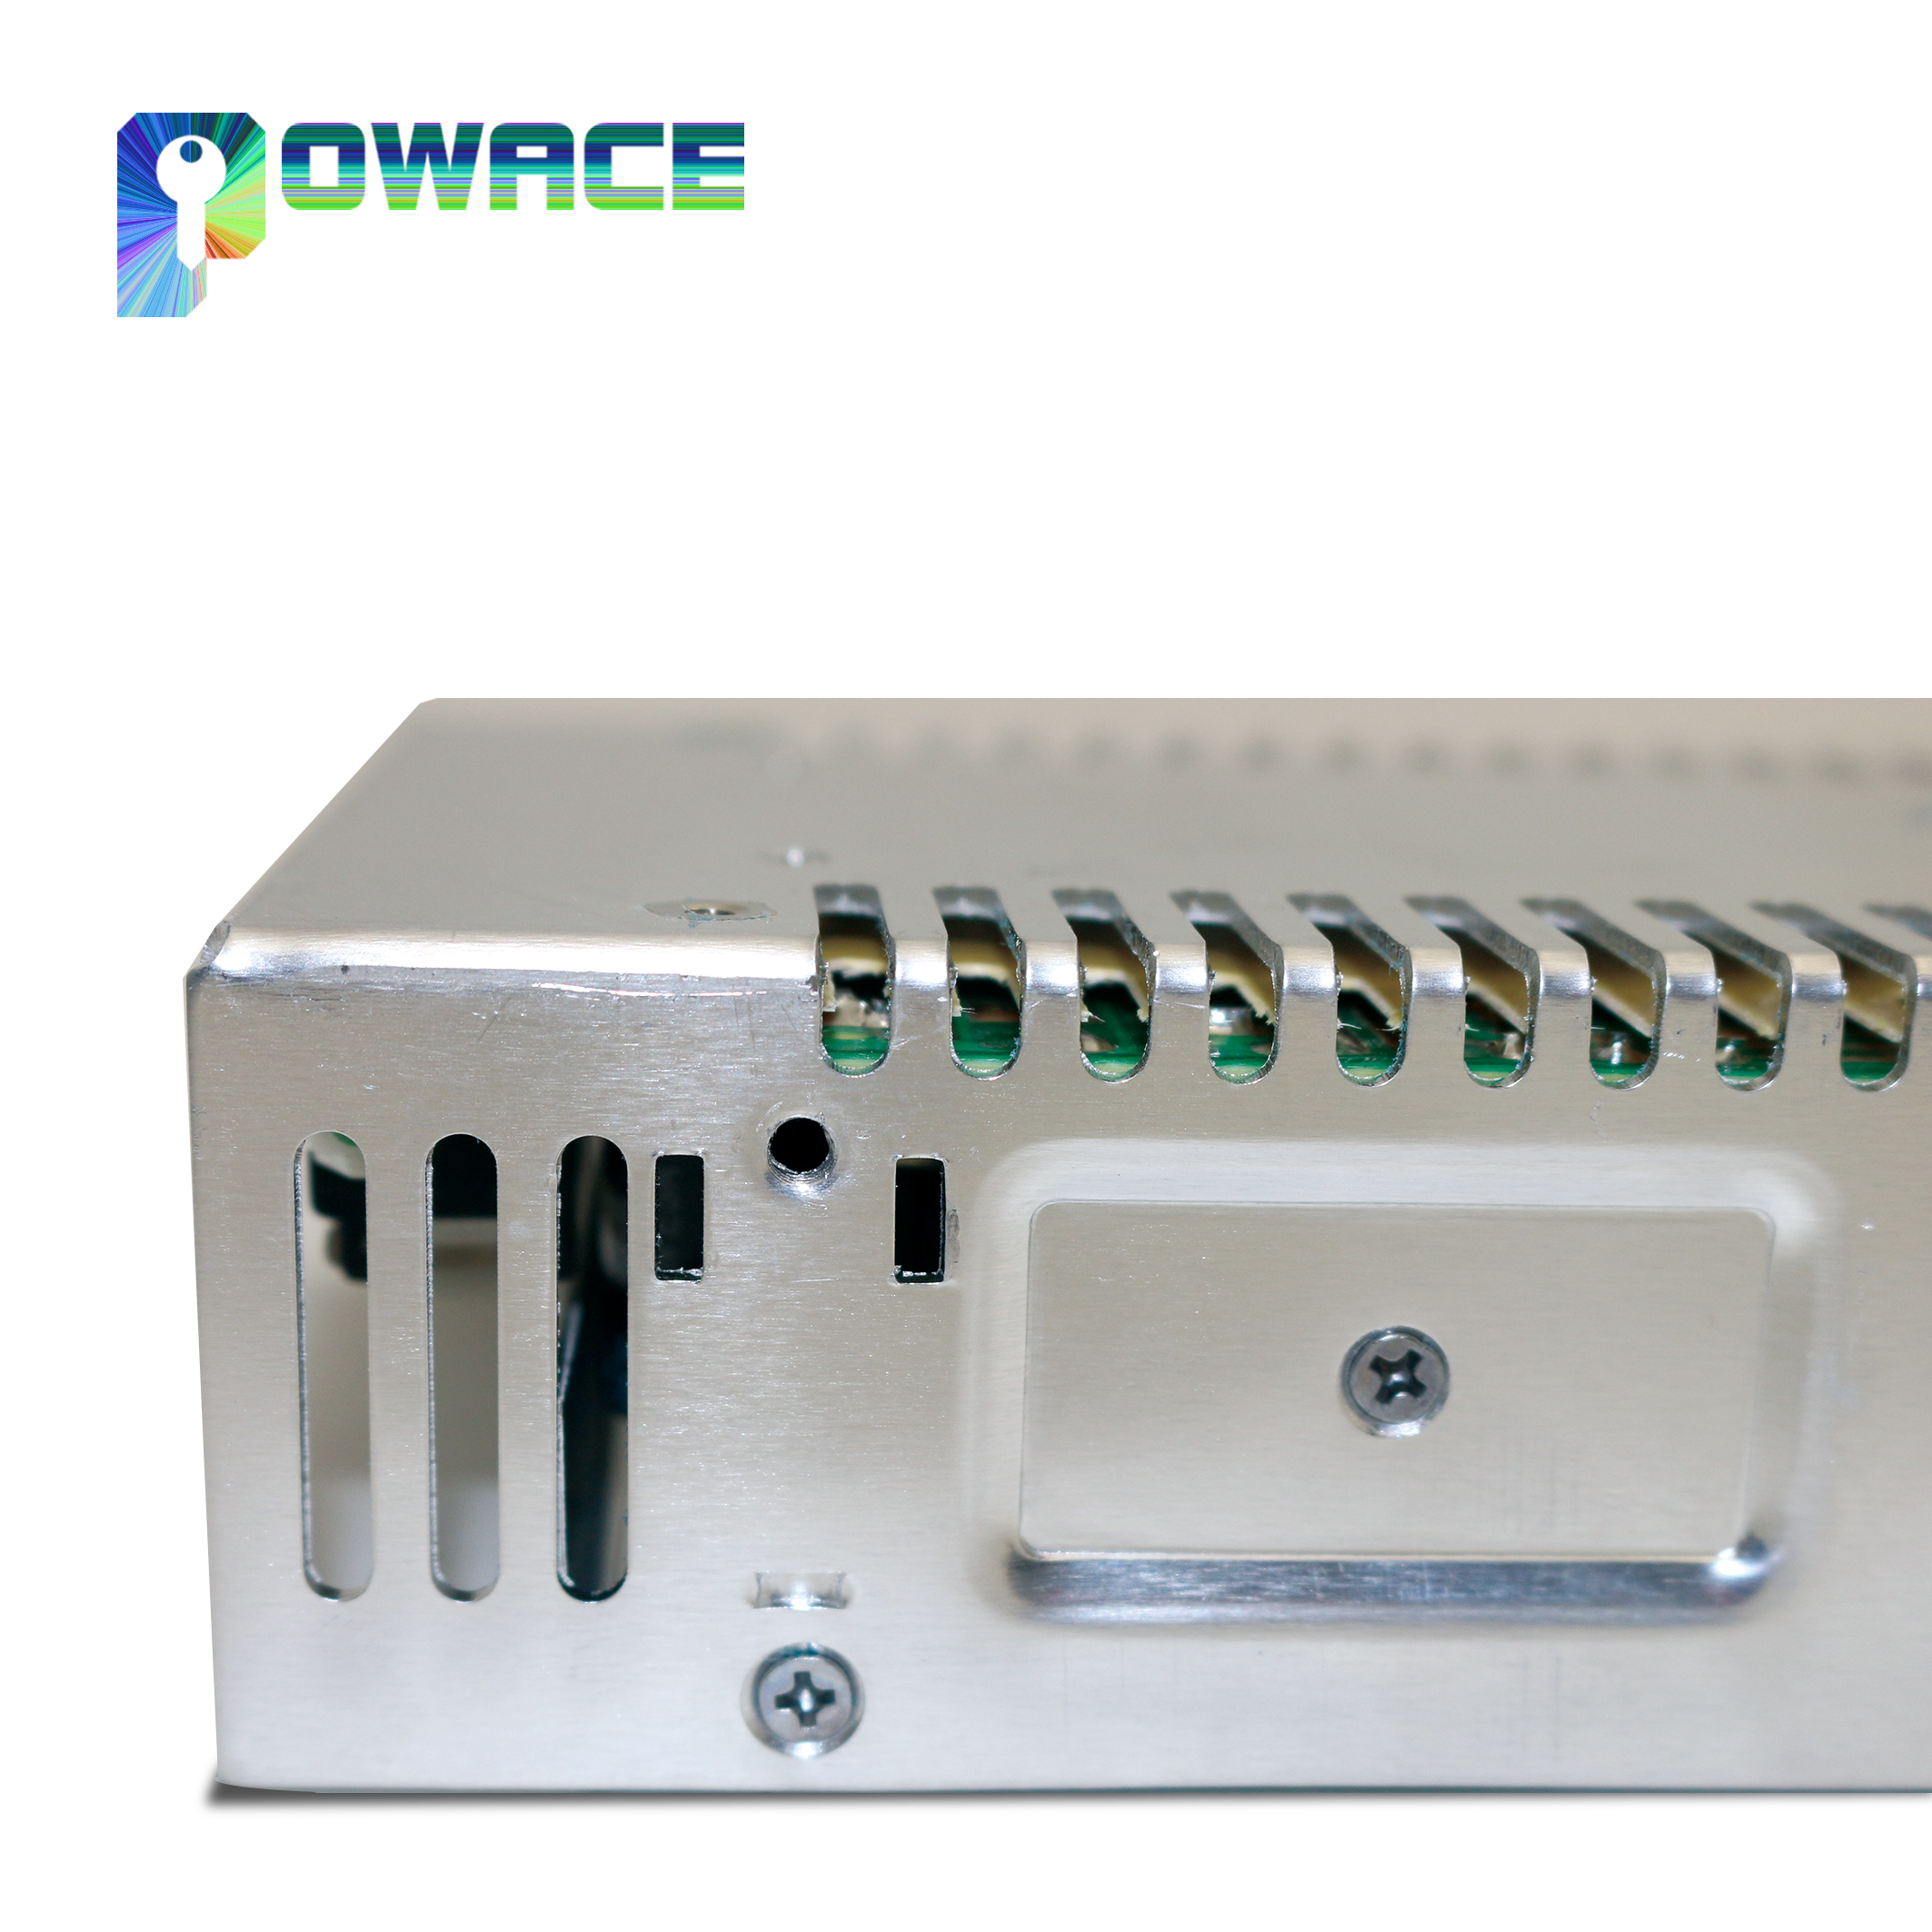 【DE】500W 60V 8.3A DC Switching Power Supply for Servo Motor//LED Strip//CNC Router